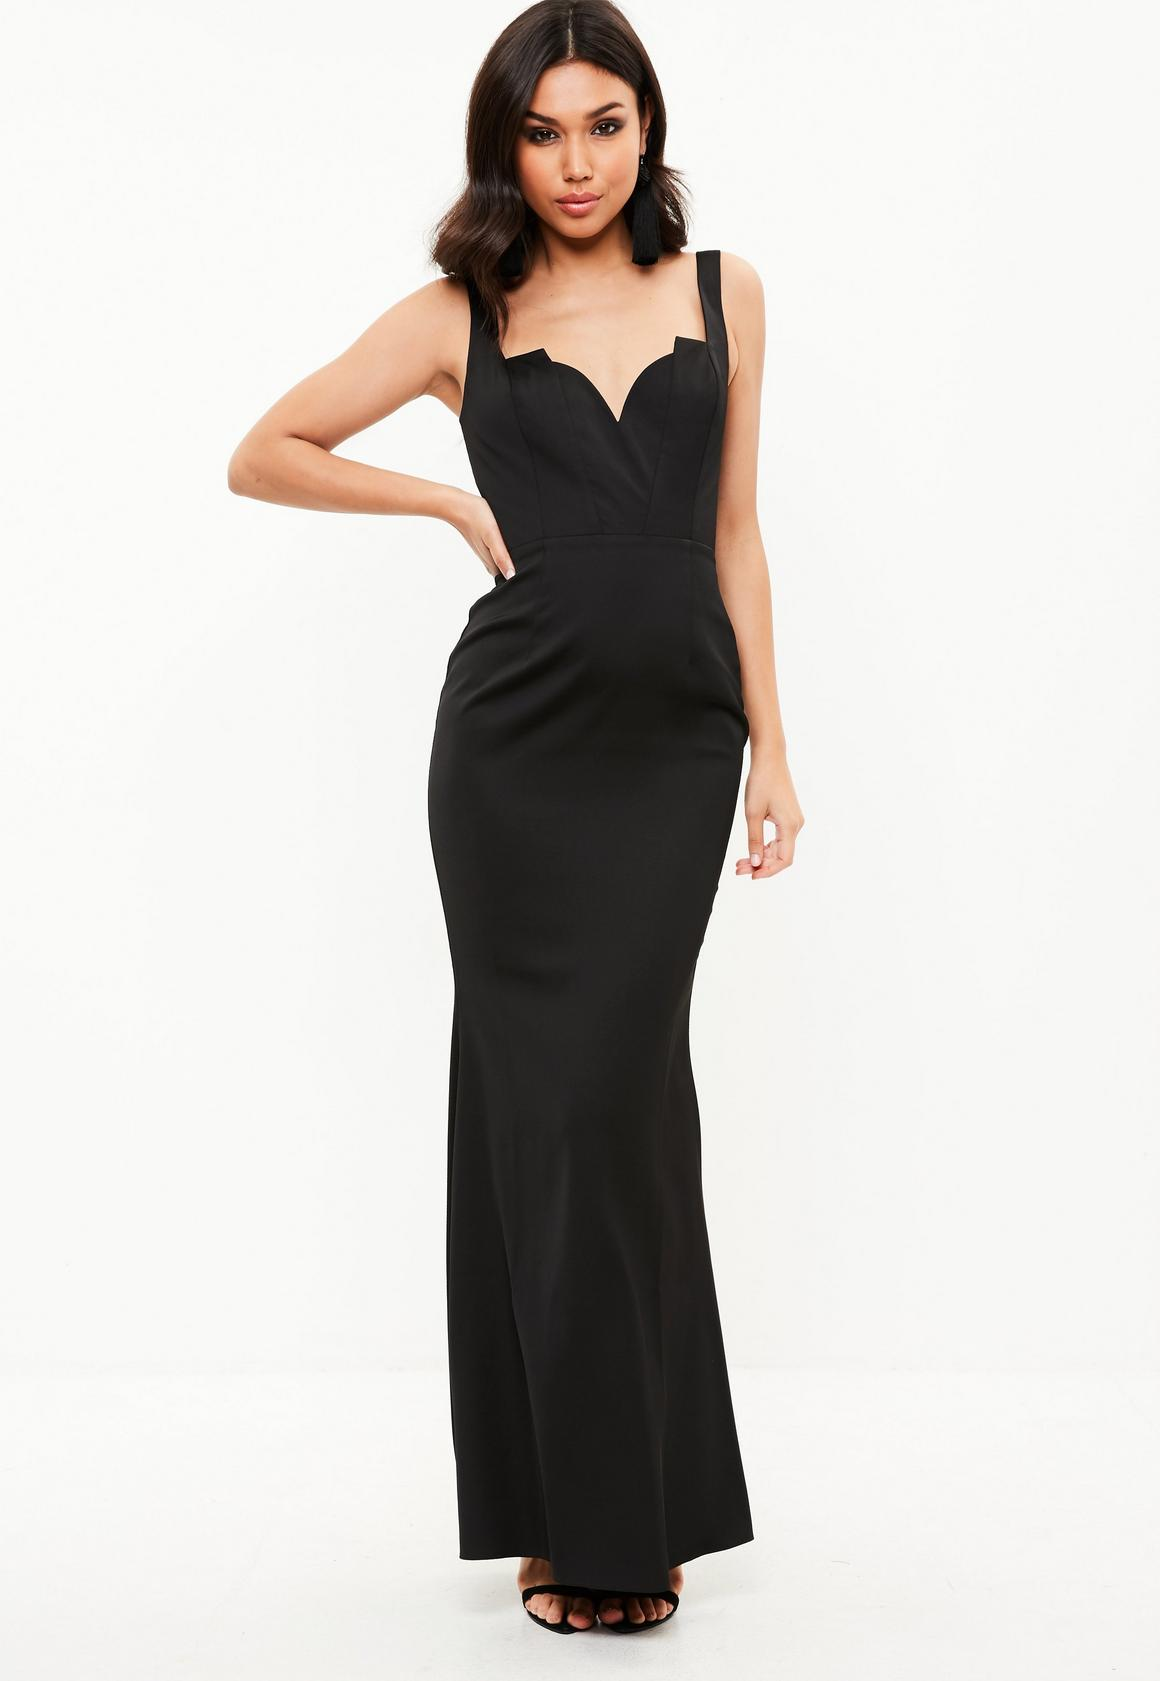 Black Satin Plunge Strappy Fishtail Dress | Missguided